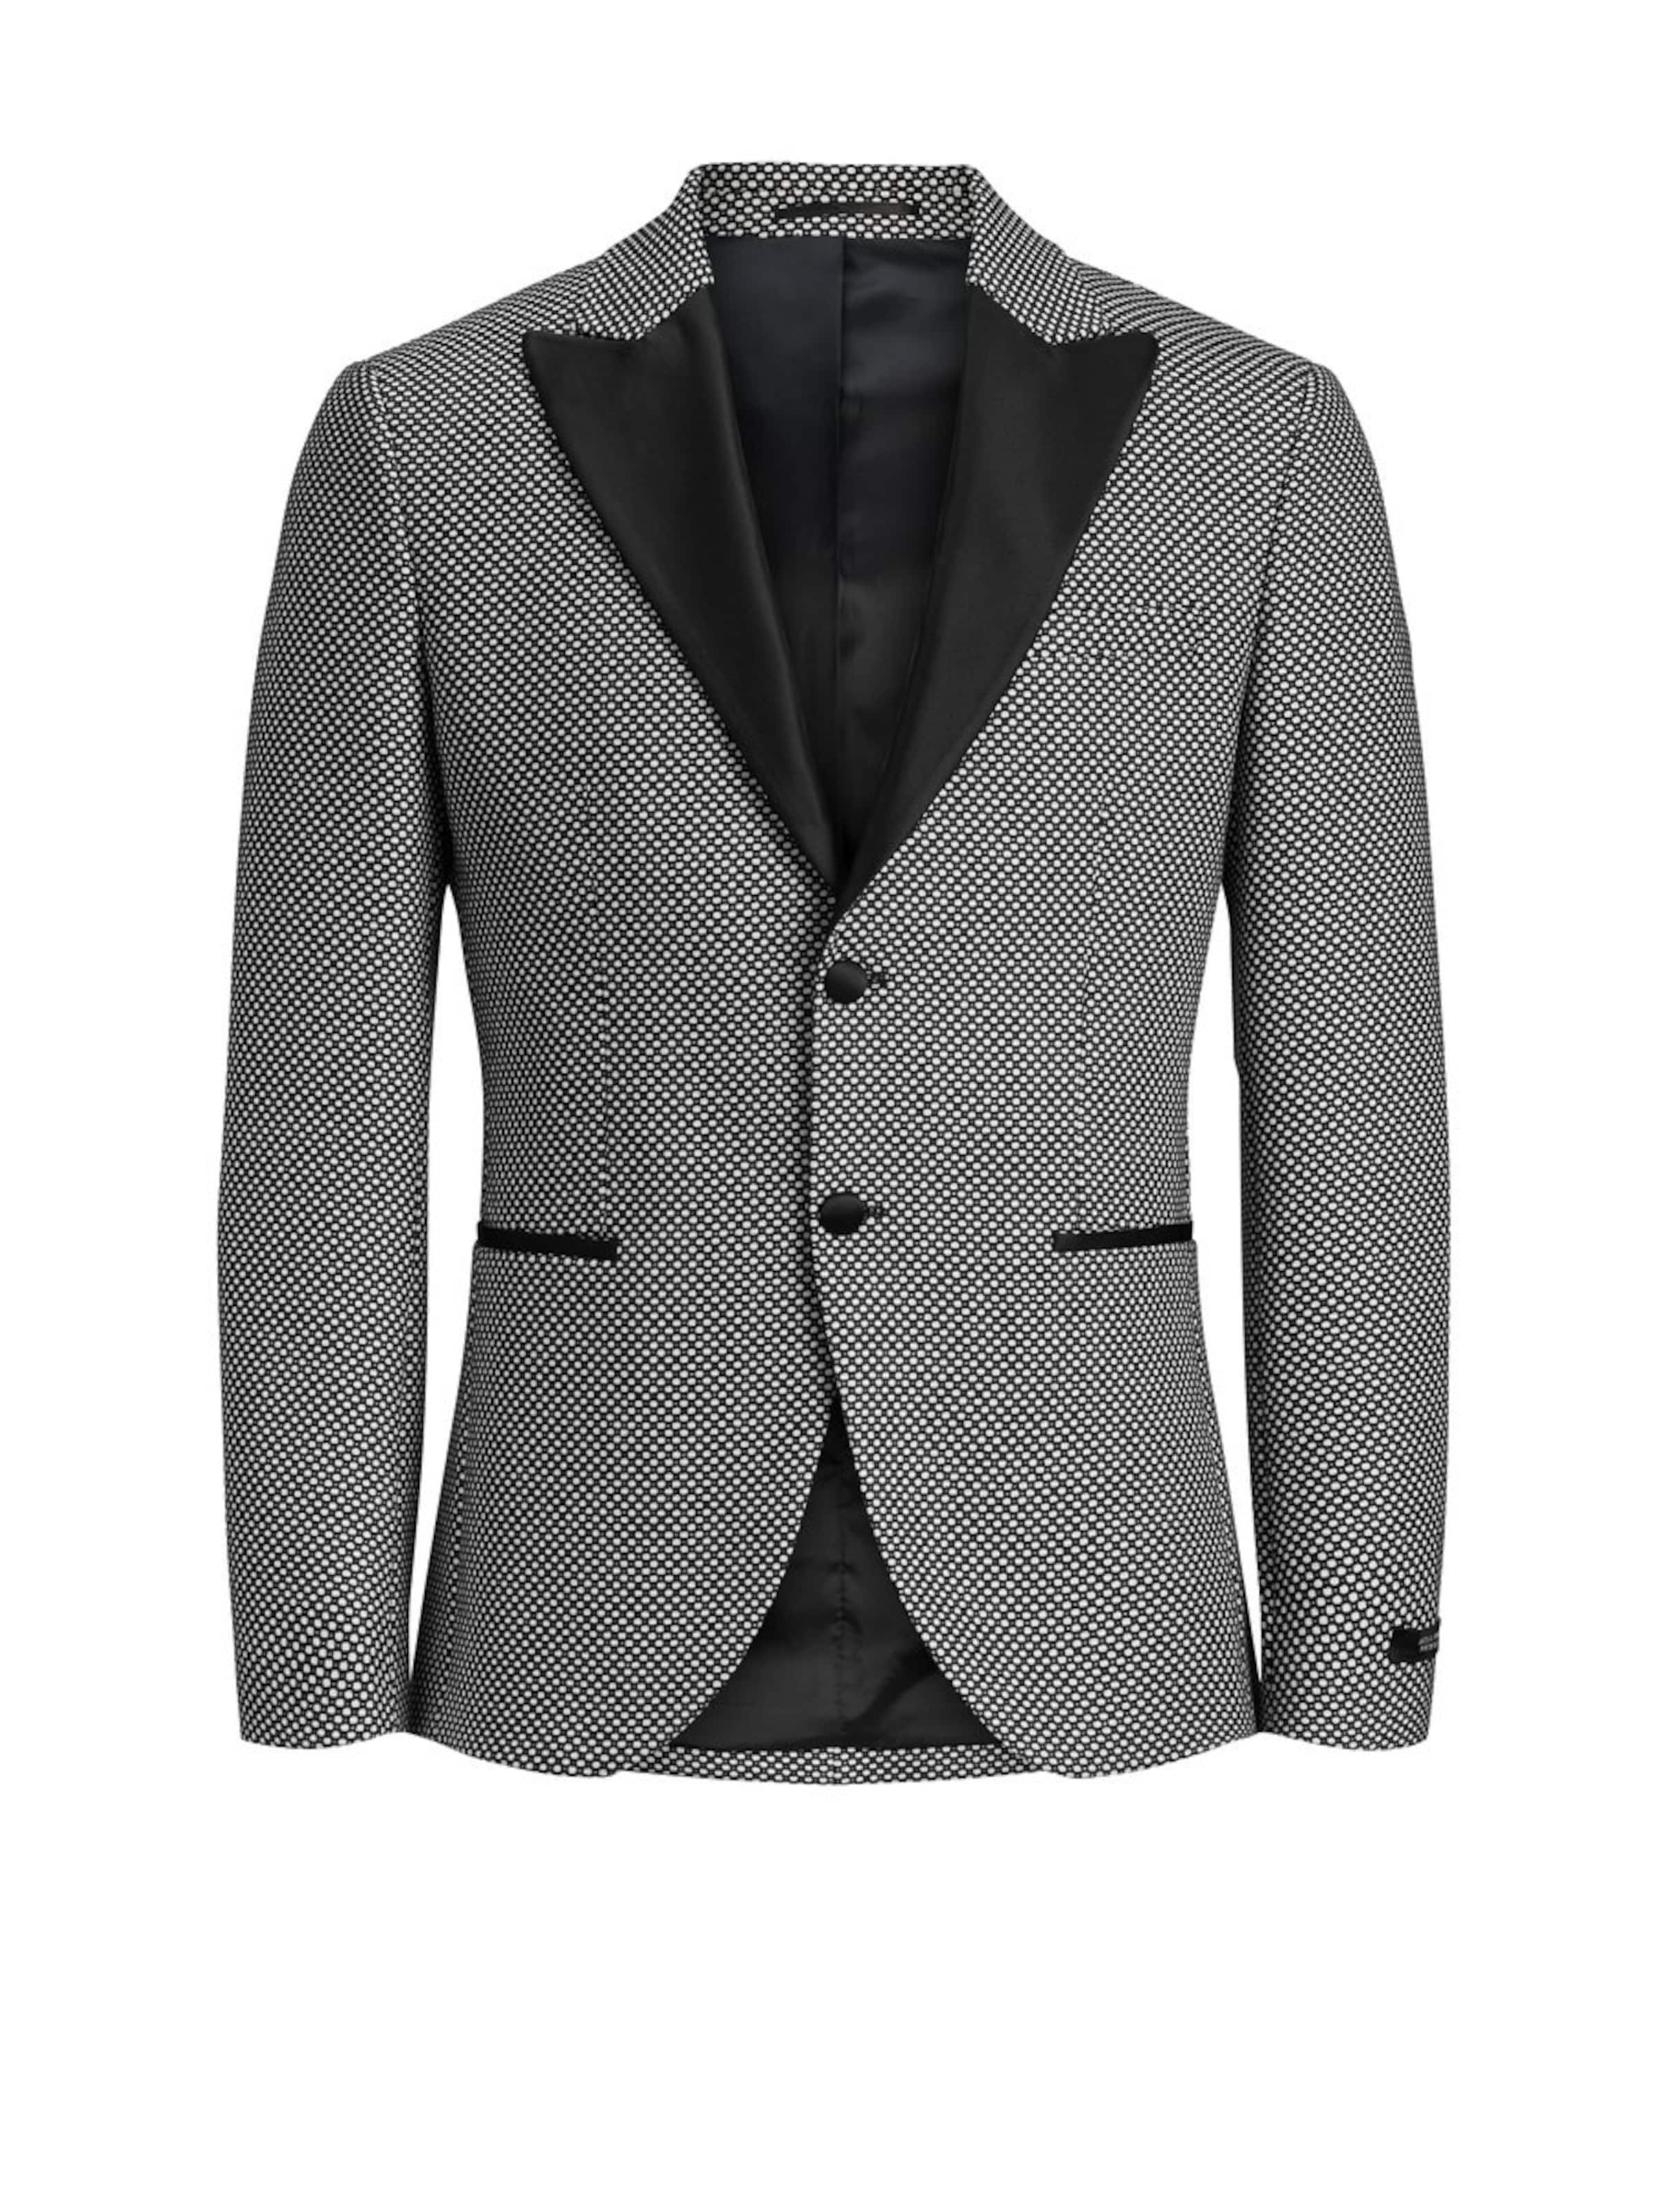 Jones In Jones SchwarzWeiß Blazer Jackamp; Jones Blazer In Blazer In Jackamp; SchwarzWeiß Jackamp; E2YW9HID